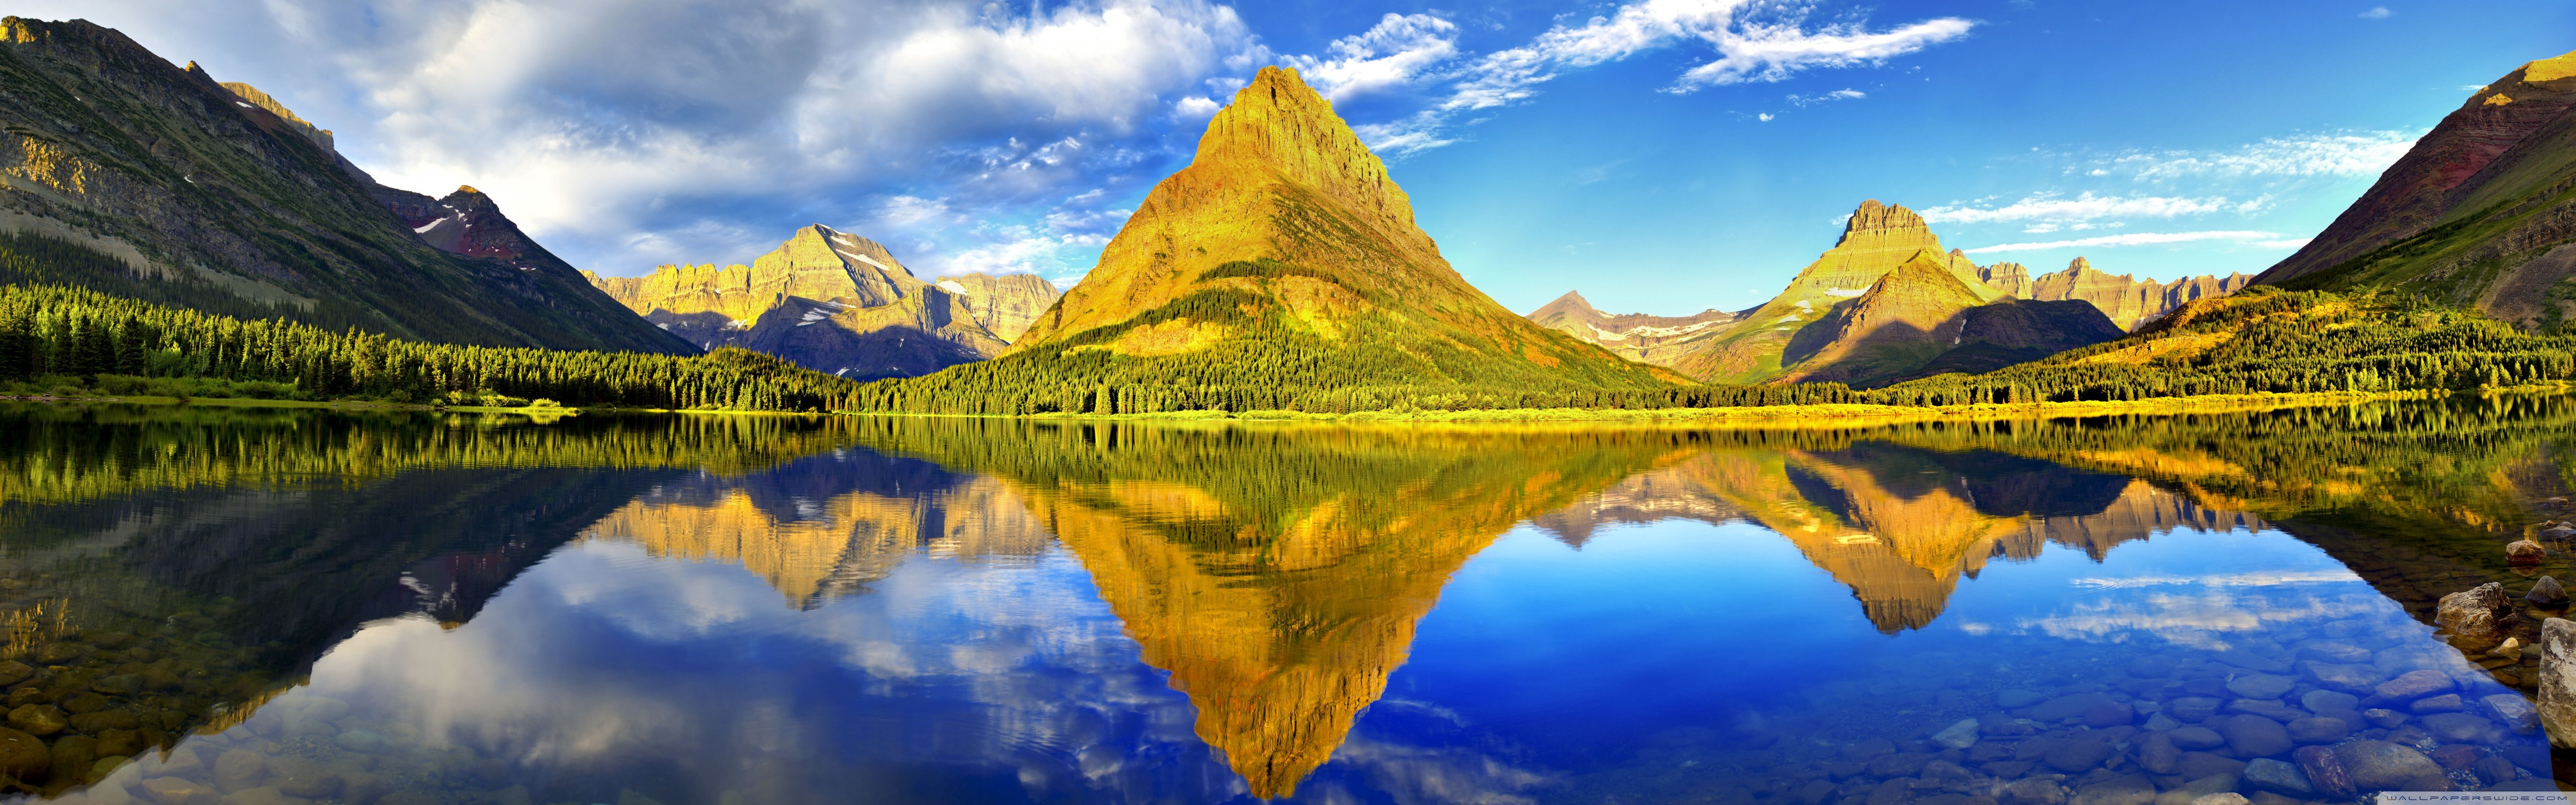 Glacier National Park Panorama 4K HD Desktop Wallpaper for 4K 5120x1600